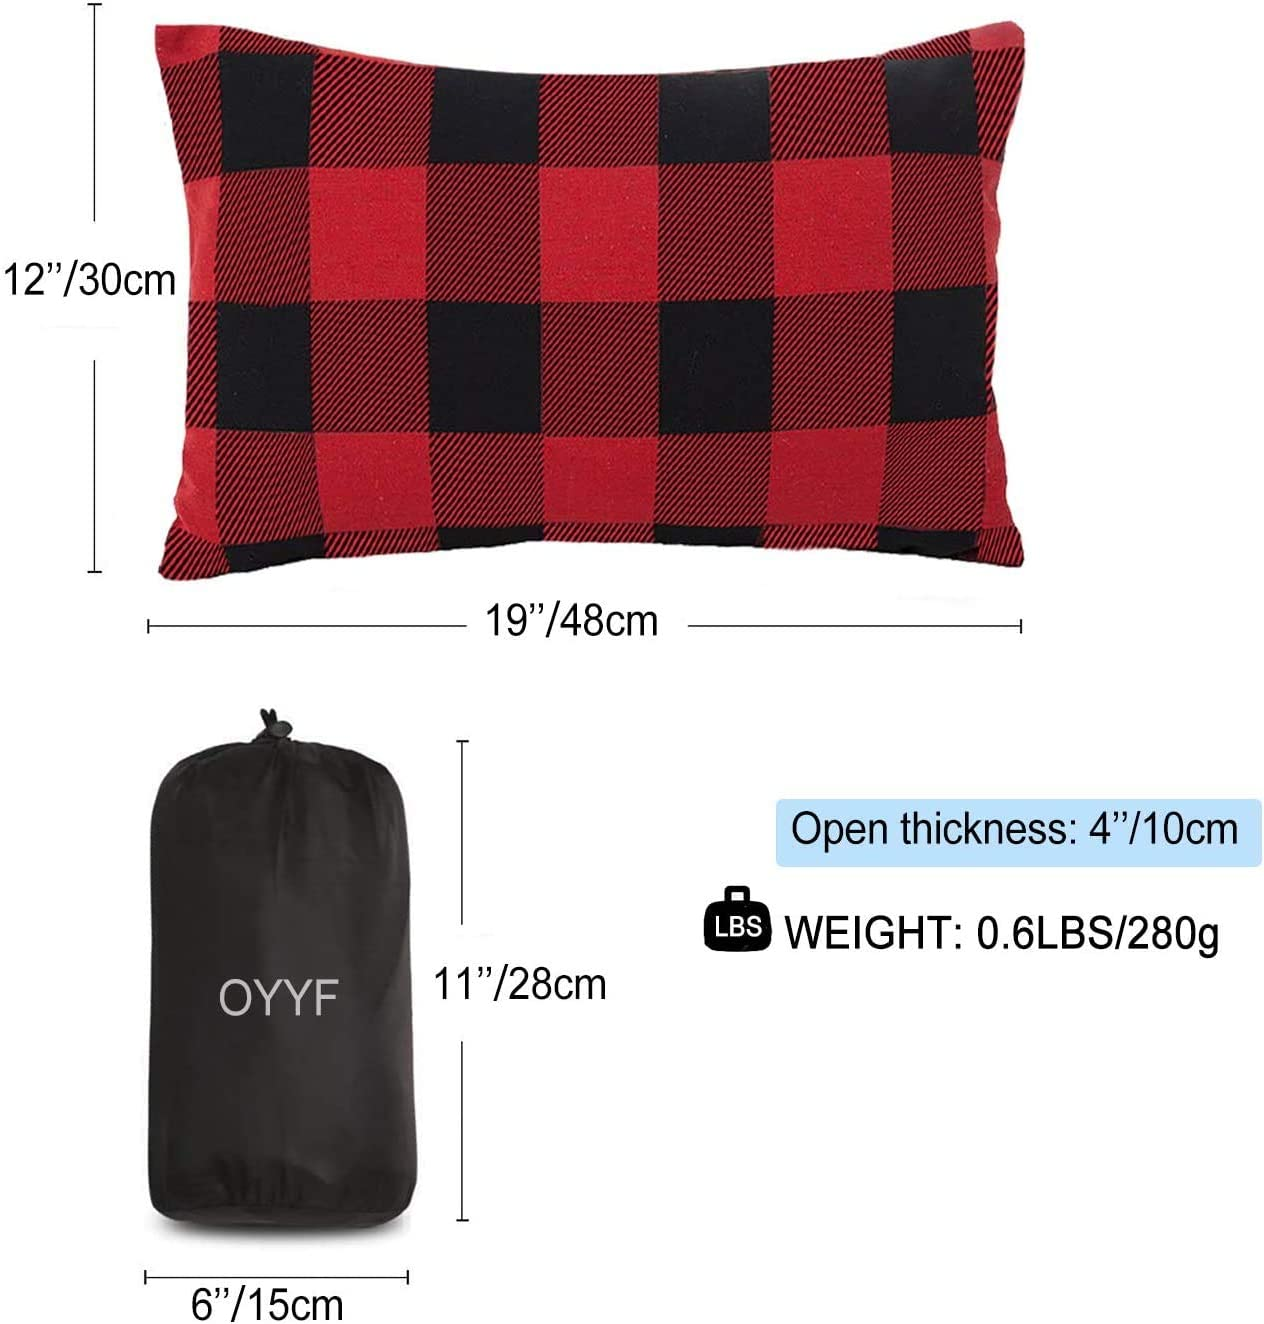 Removable Cover with Storage Bag OYYF Small Camping Pillow for Sleeping Compressible Lightweight Camp Pillow